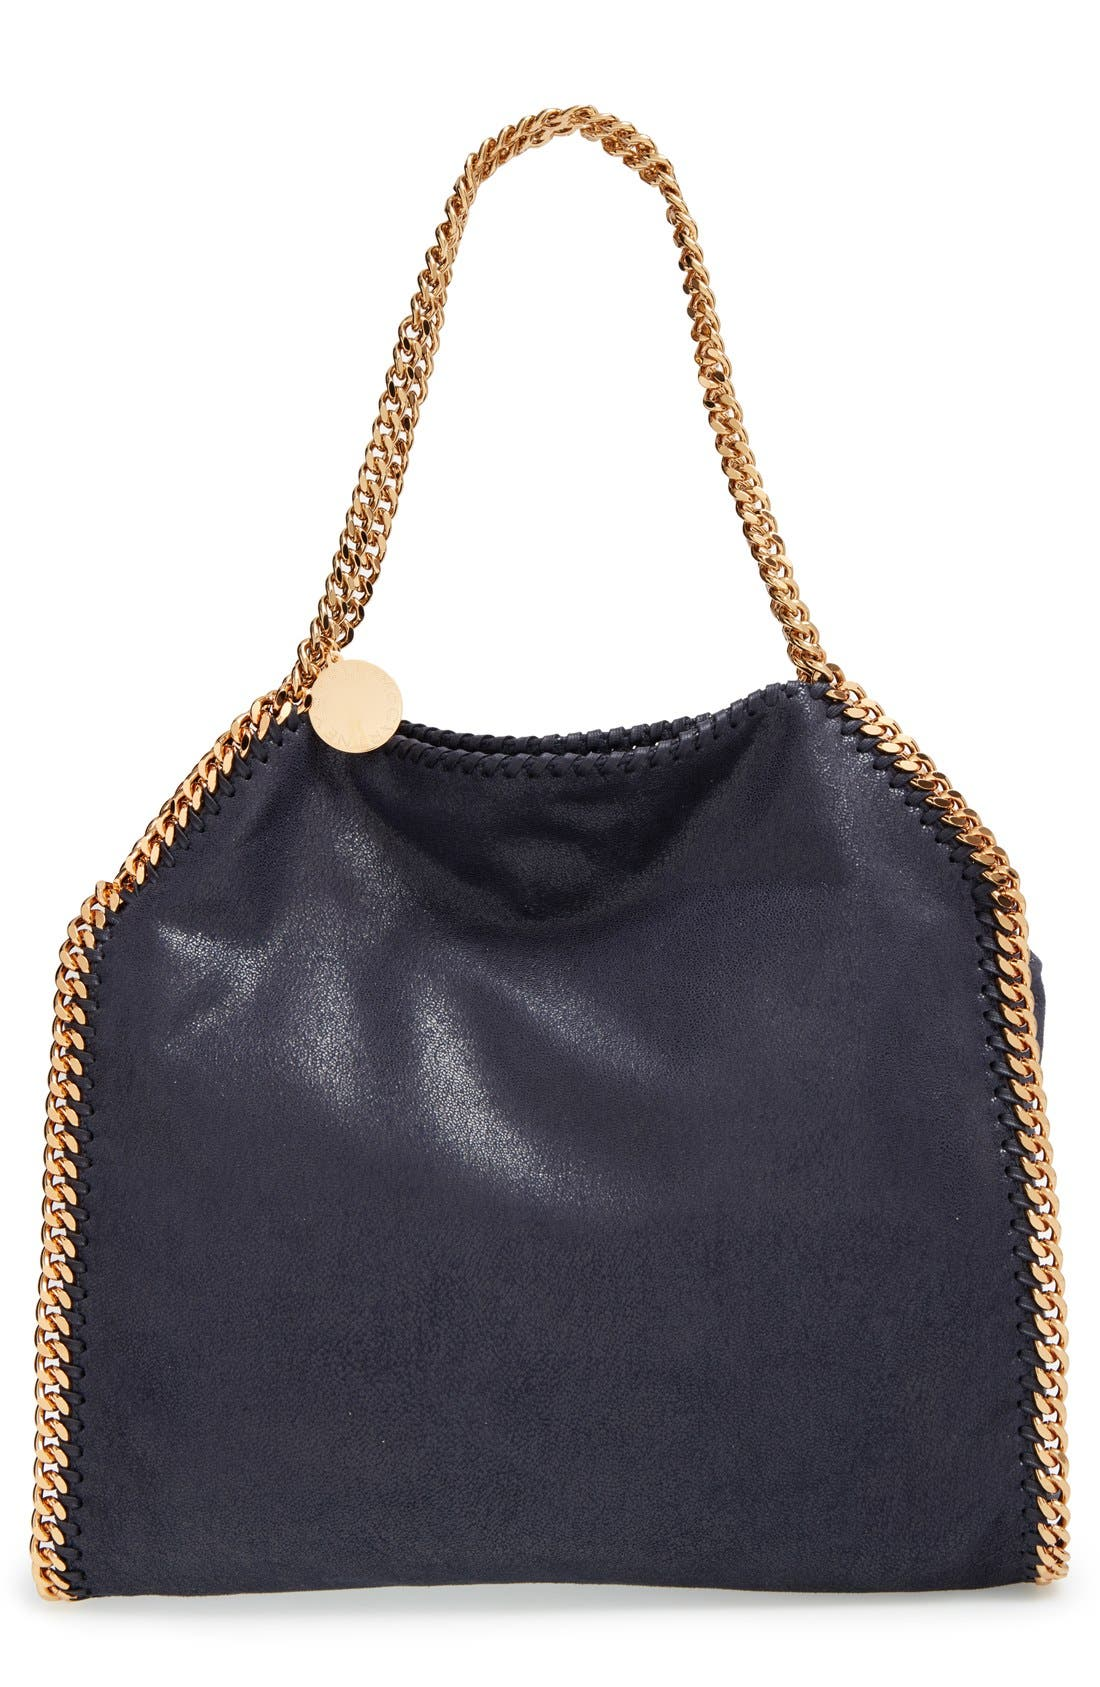 Stella McCartney 'Small Falabella - Shaggy Deer' Faux Leather Tote